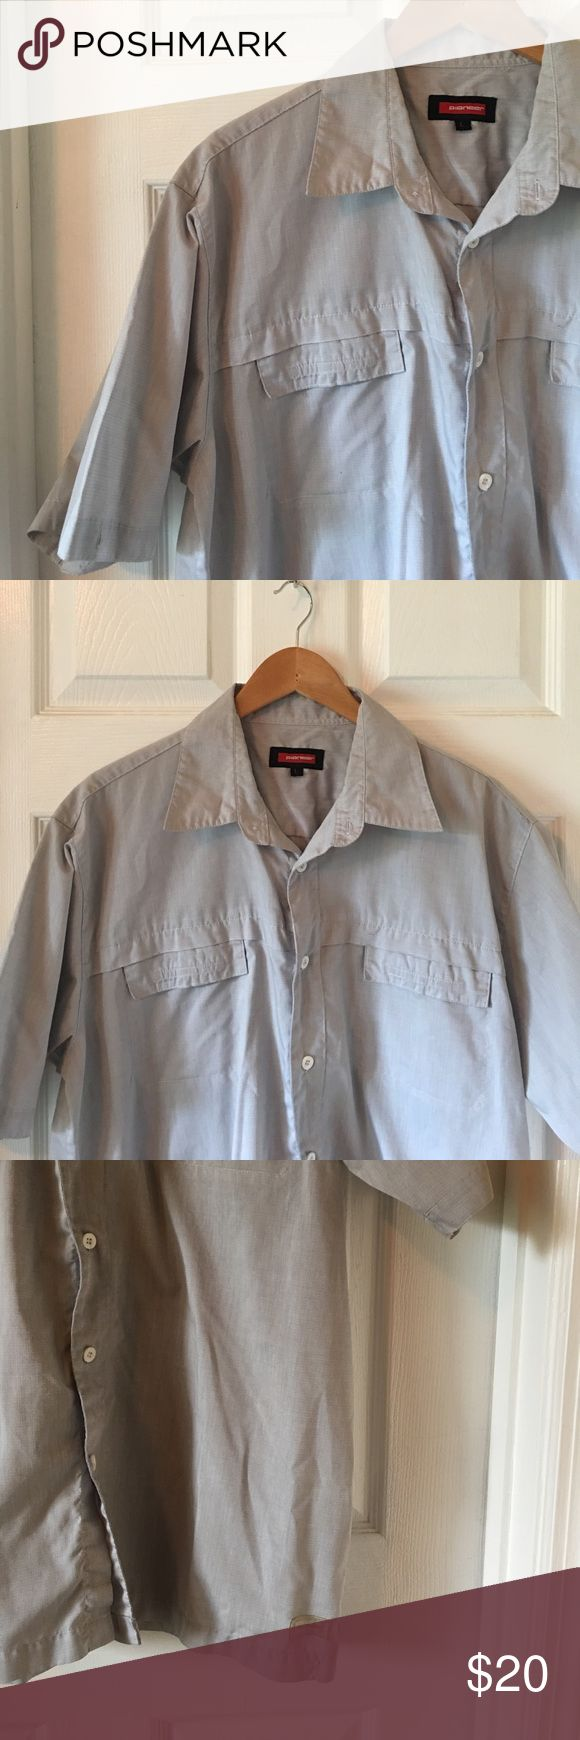 The Perfect Casual Button Down Super cute Pioneer casual button down shirt. Super light and comfortable. Light blue/gray color. EUC, barely worn. Two front pockets. Fabric: 65% Polyester 35% Cotton Pioneer Shirts Casual Button Down Shirts